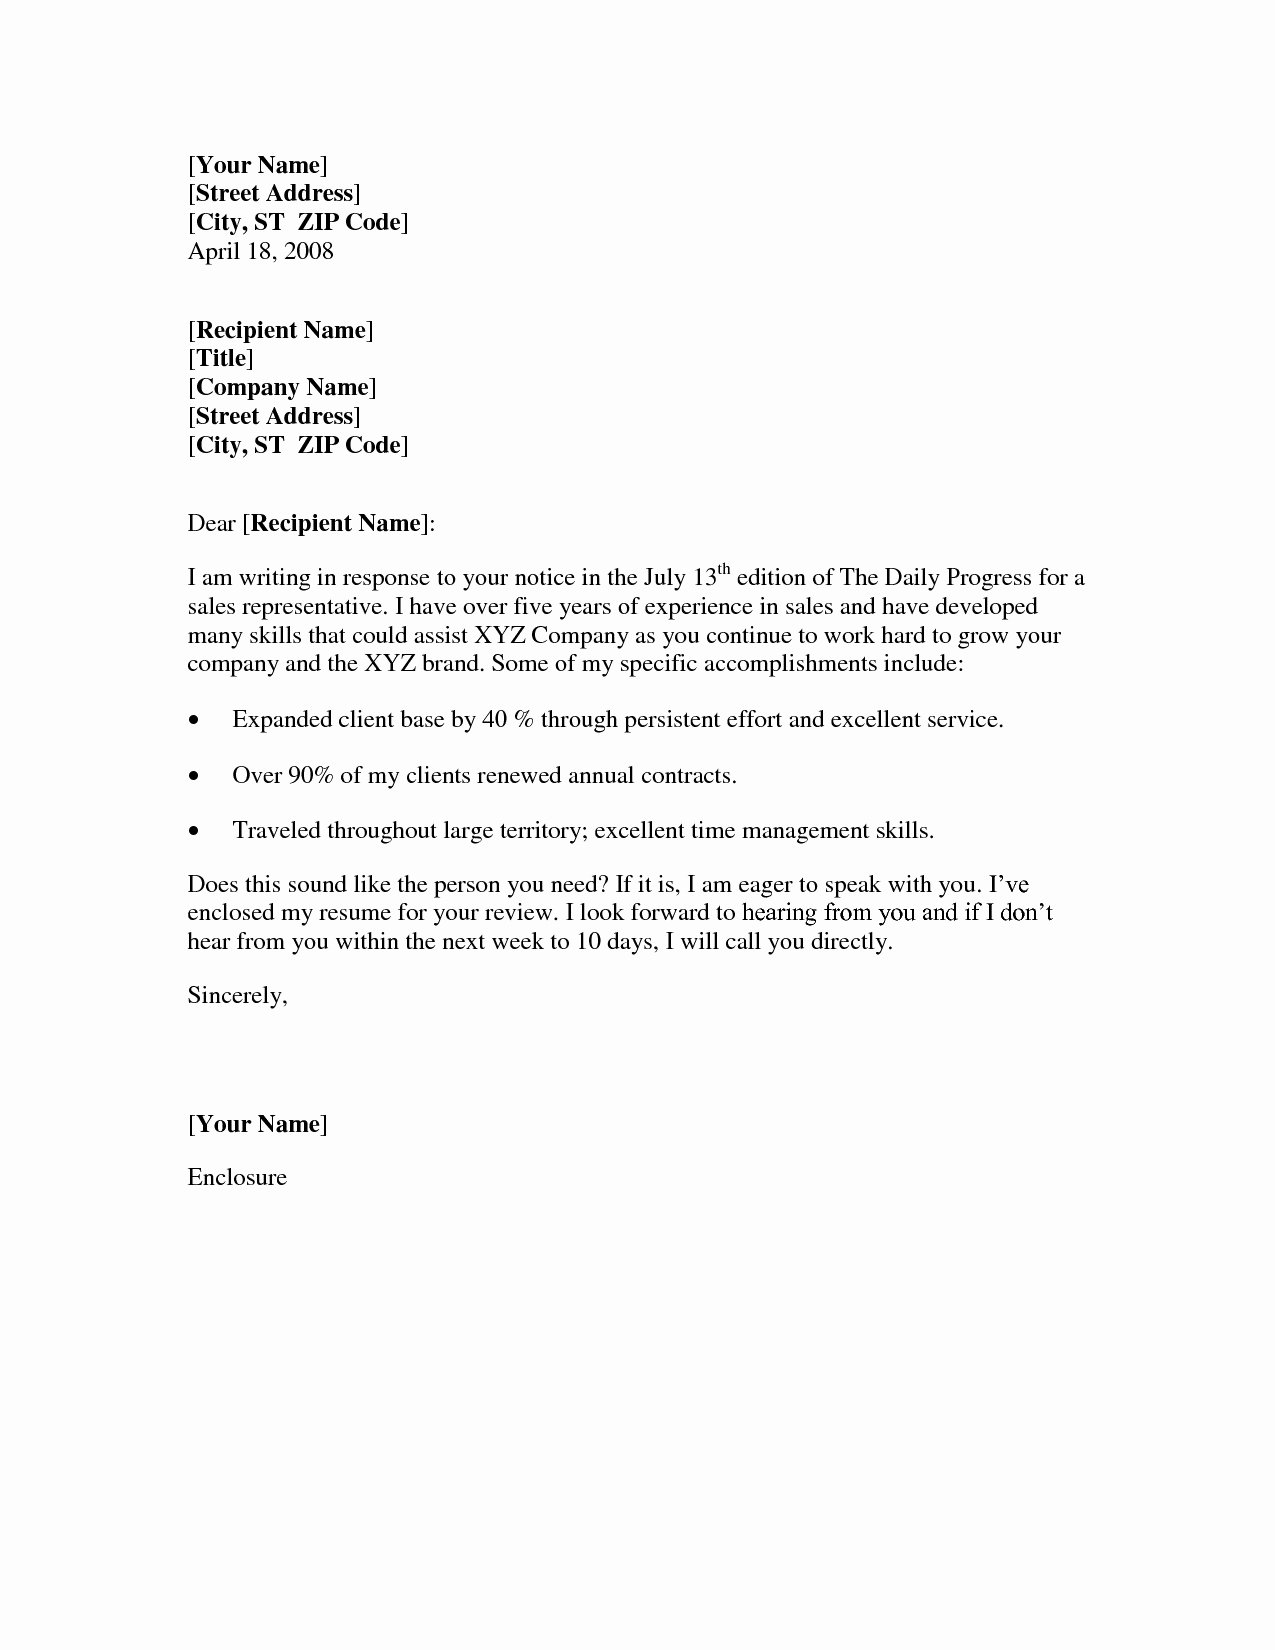 Easy Cover Letter Template Free Cover Letter and Resume